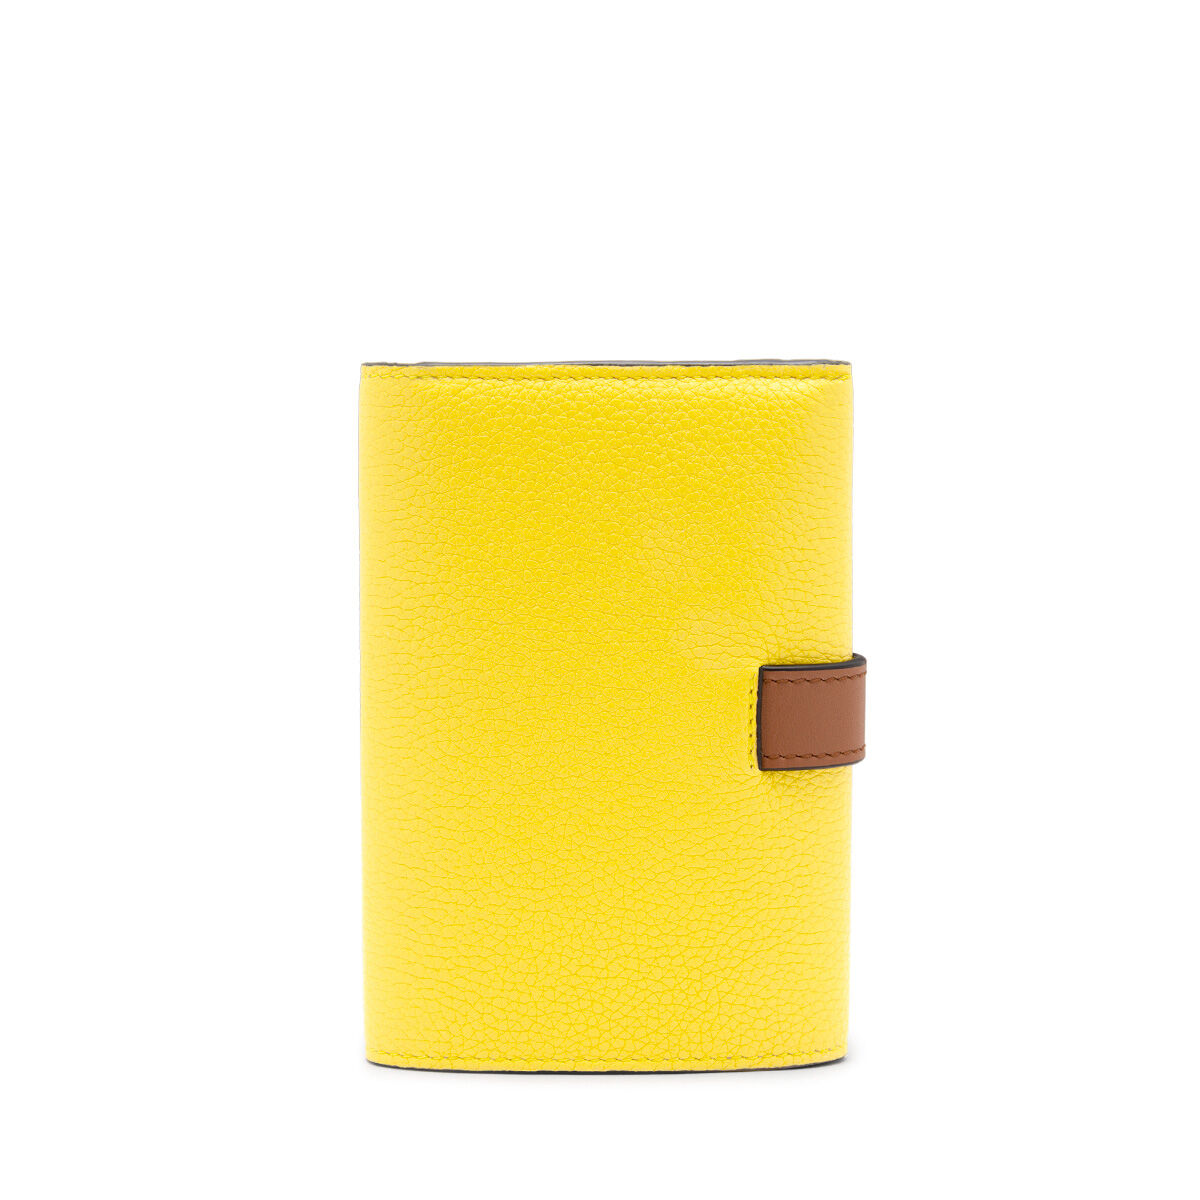 LOEWE Small Vertical Wallet Leaf/Yellow all